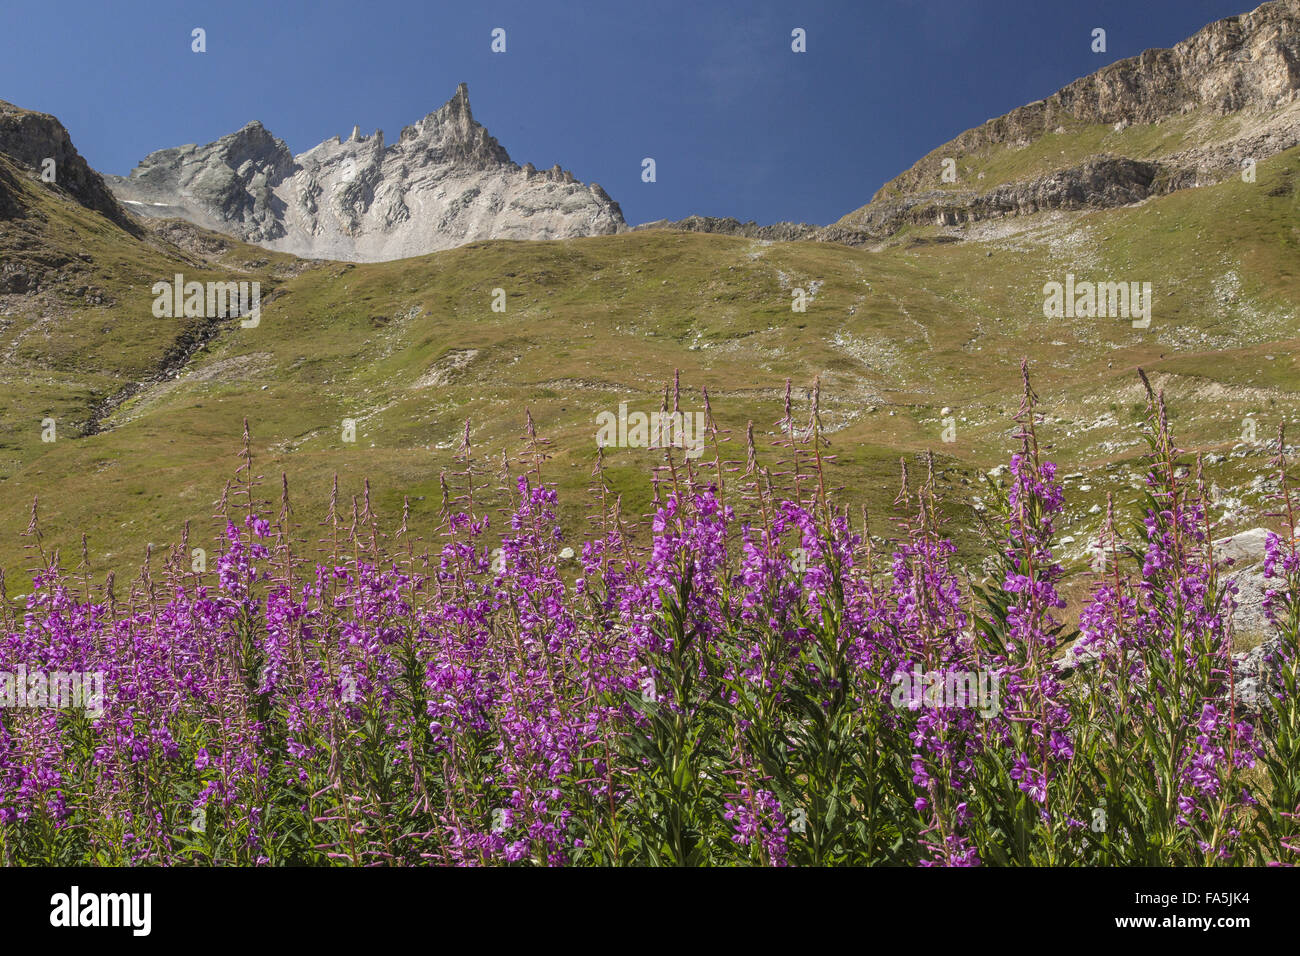 Fireweed or Rosebay Willowherb in flower, with L'aiguille du Dome beyond; La Grande Sassiere valley, edge of - Stock Image